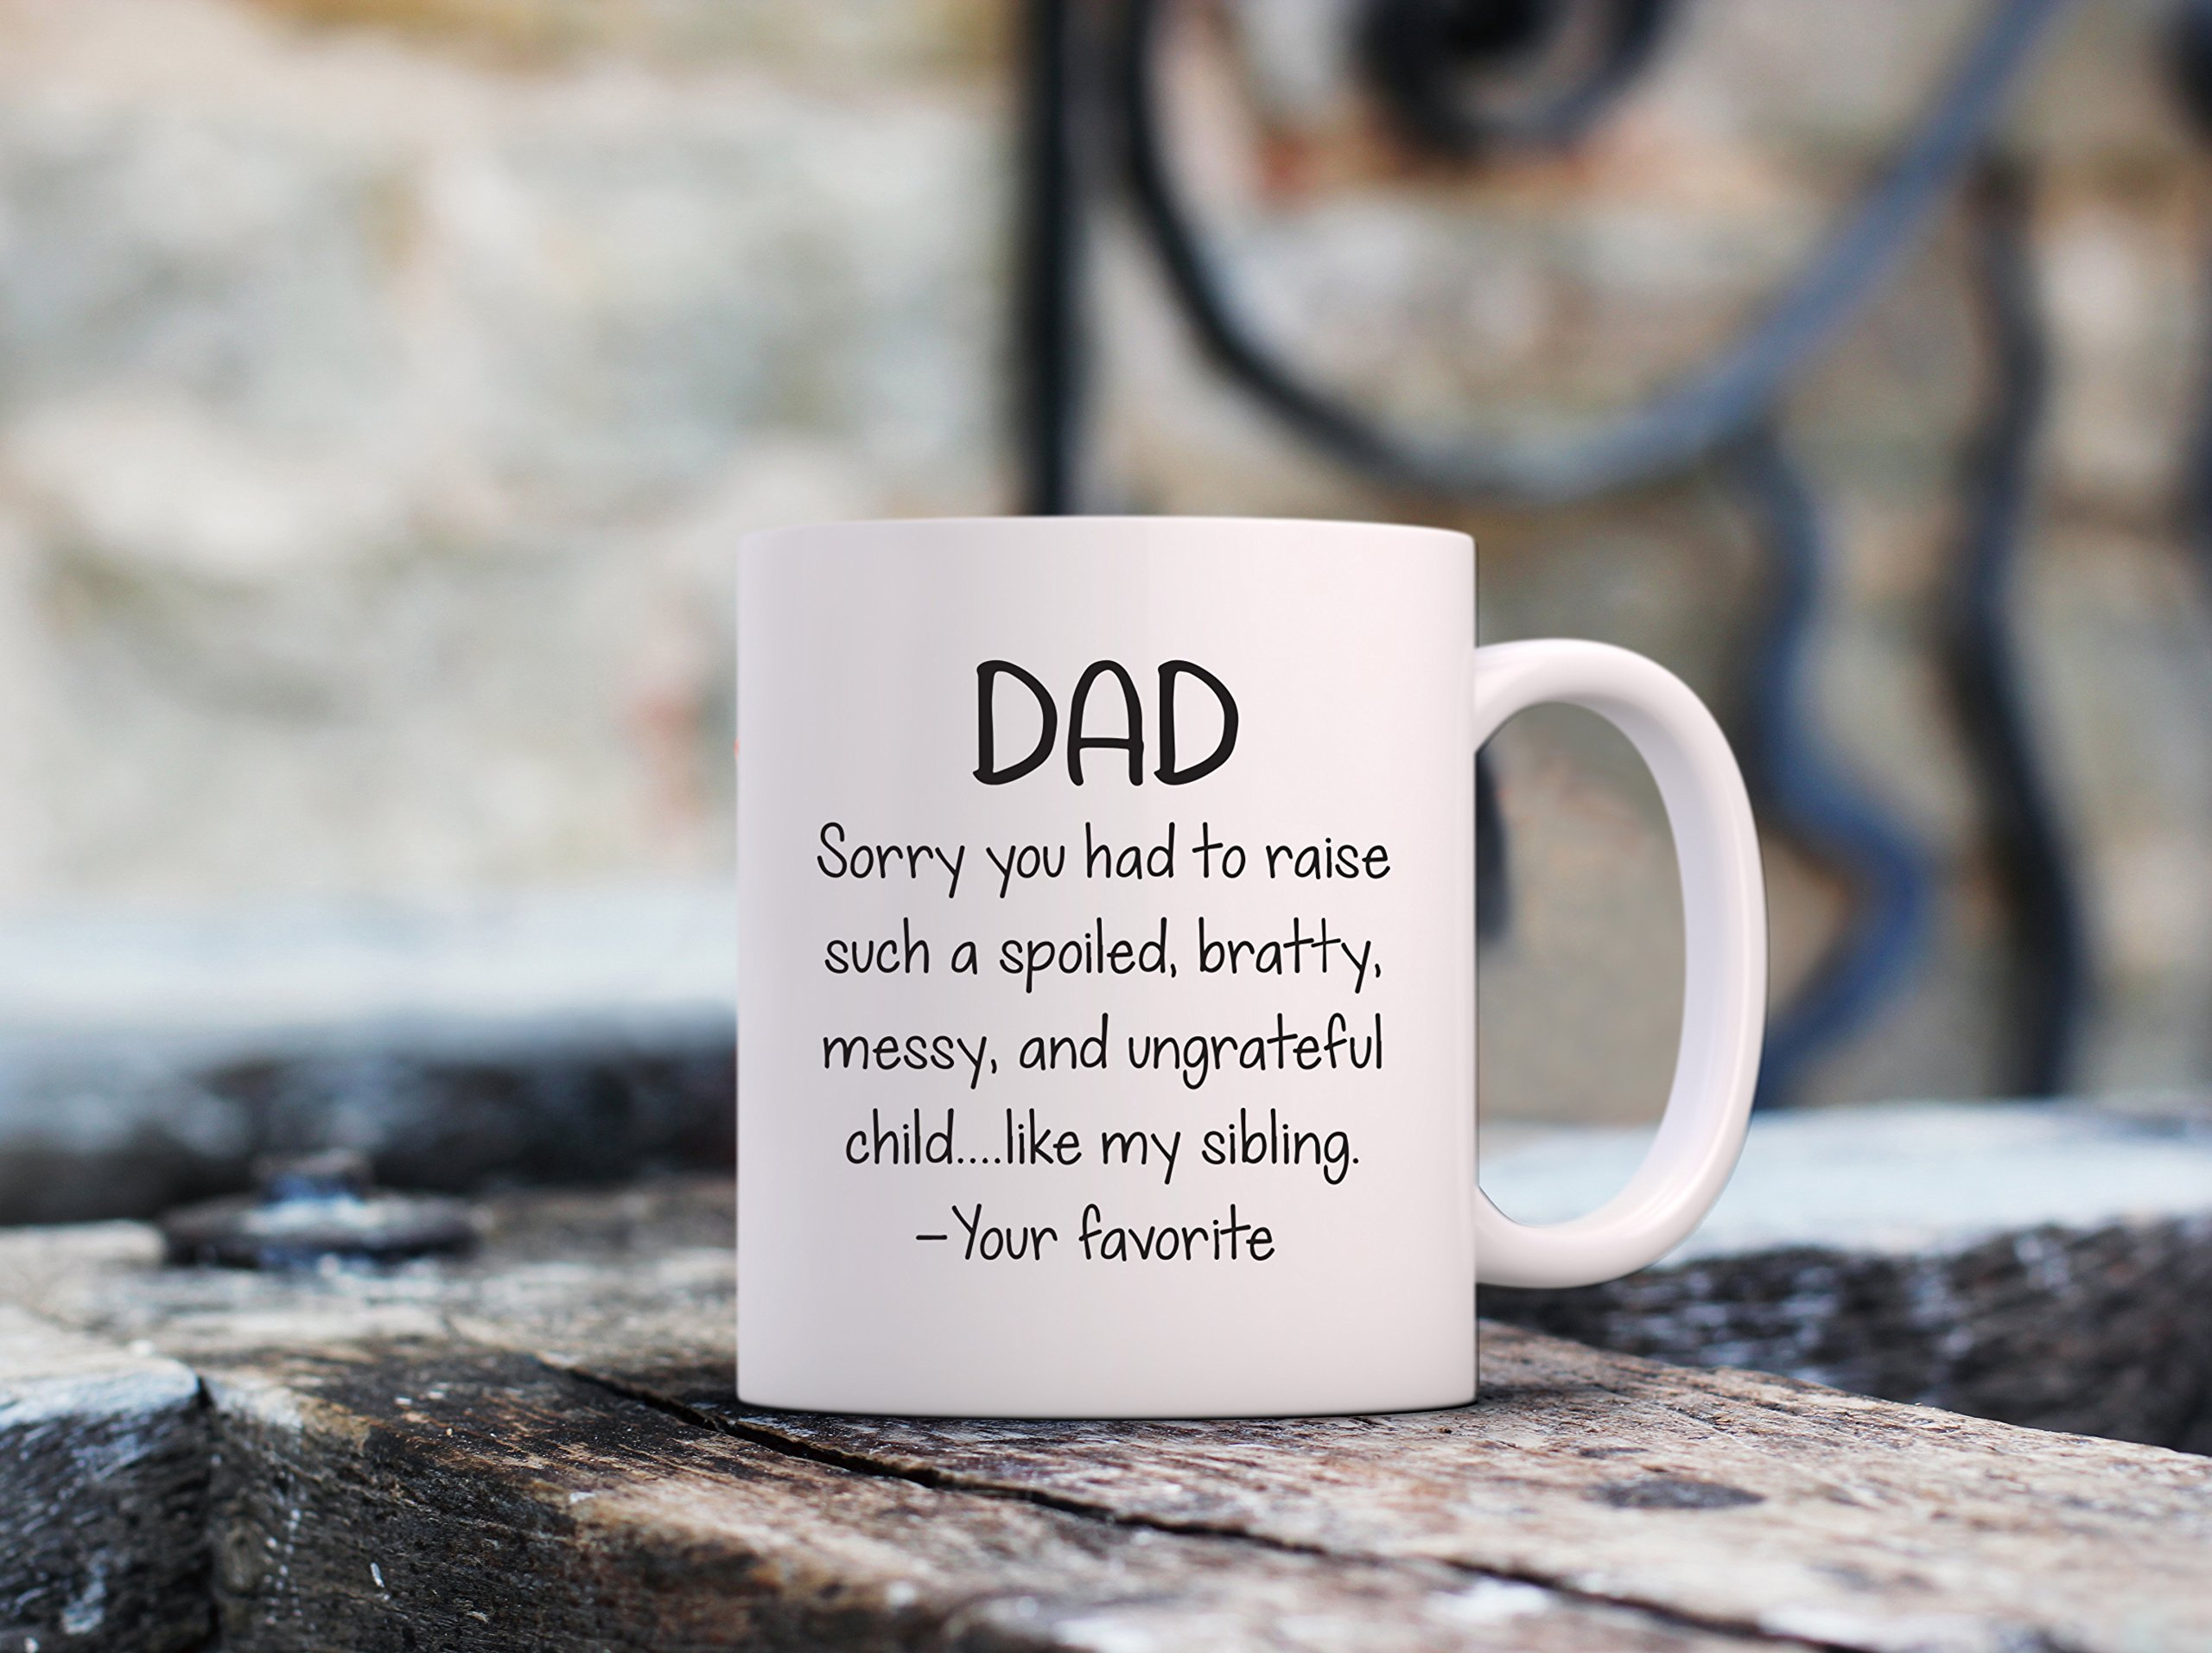 Spoiled Sibling Funny Coffee Mug - Best Dad Gifts - Unique Gag Fathers Day Gift For Him From Daughter, Son, Favorite Child - Cool Birthday Present Idea For Men, Guys, Father - Fun Novelty Cup - 11 oz by Wittsy Glassware and Gifts (Image #4)